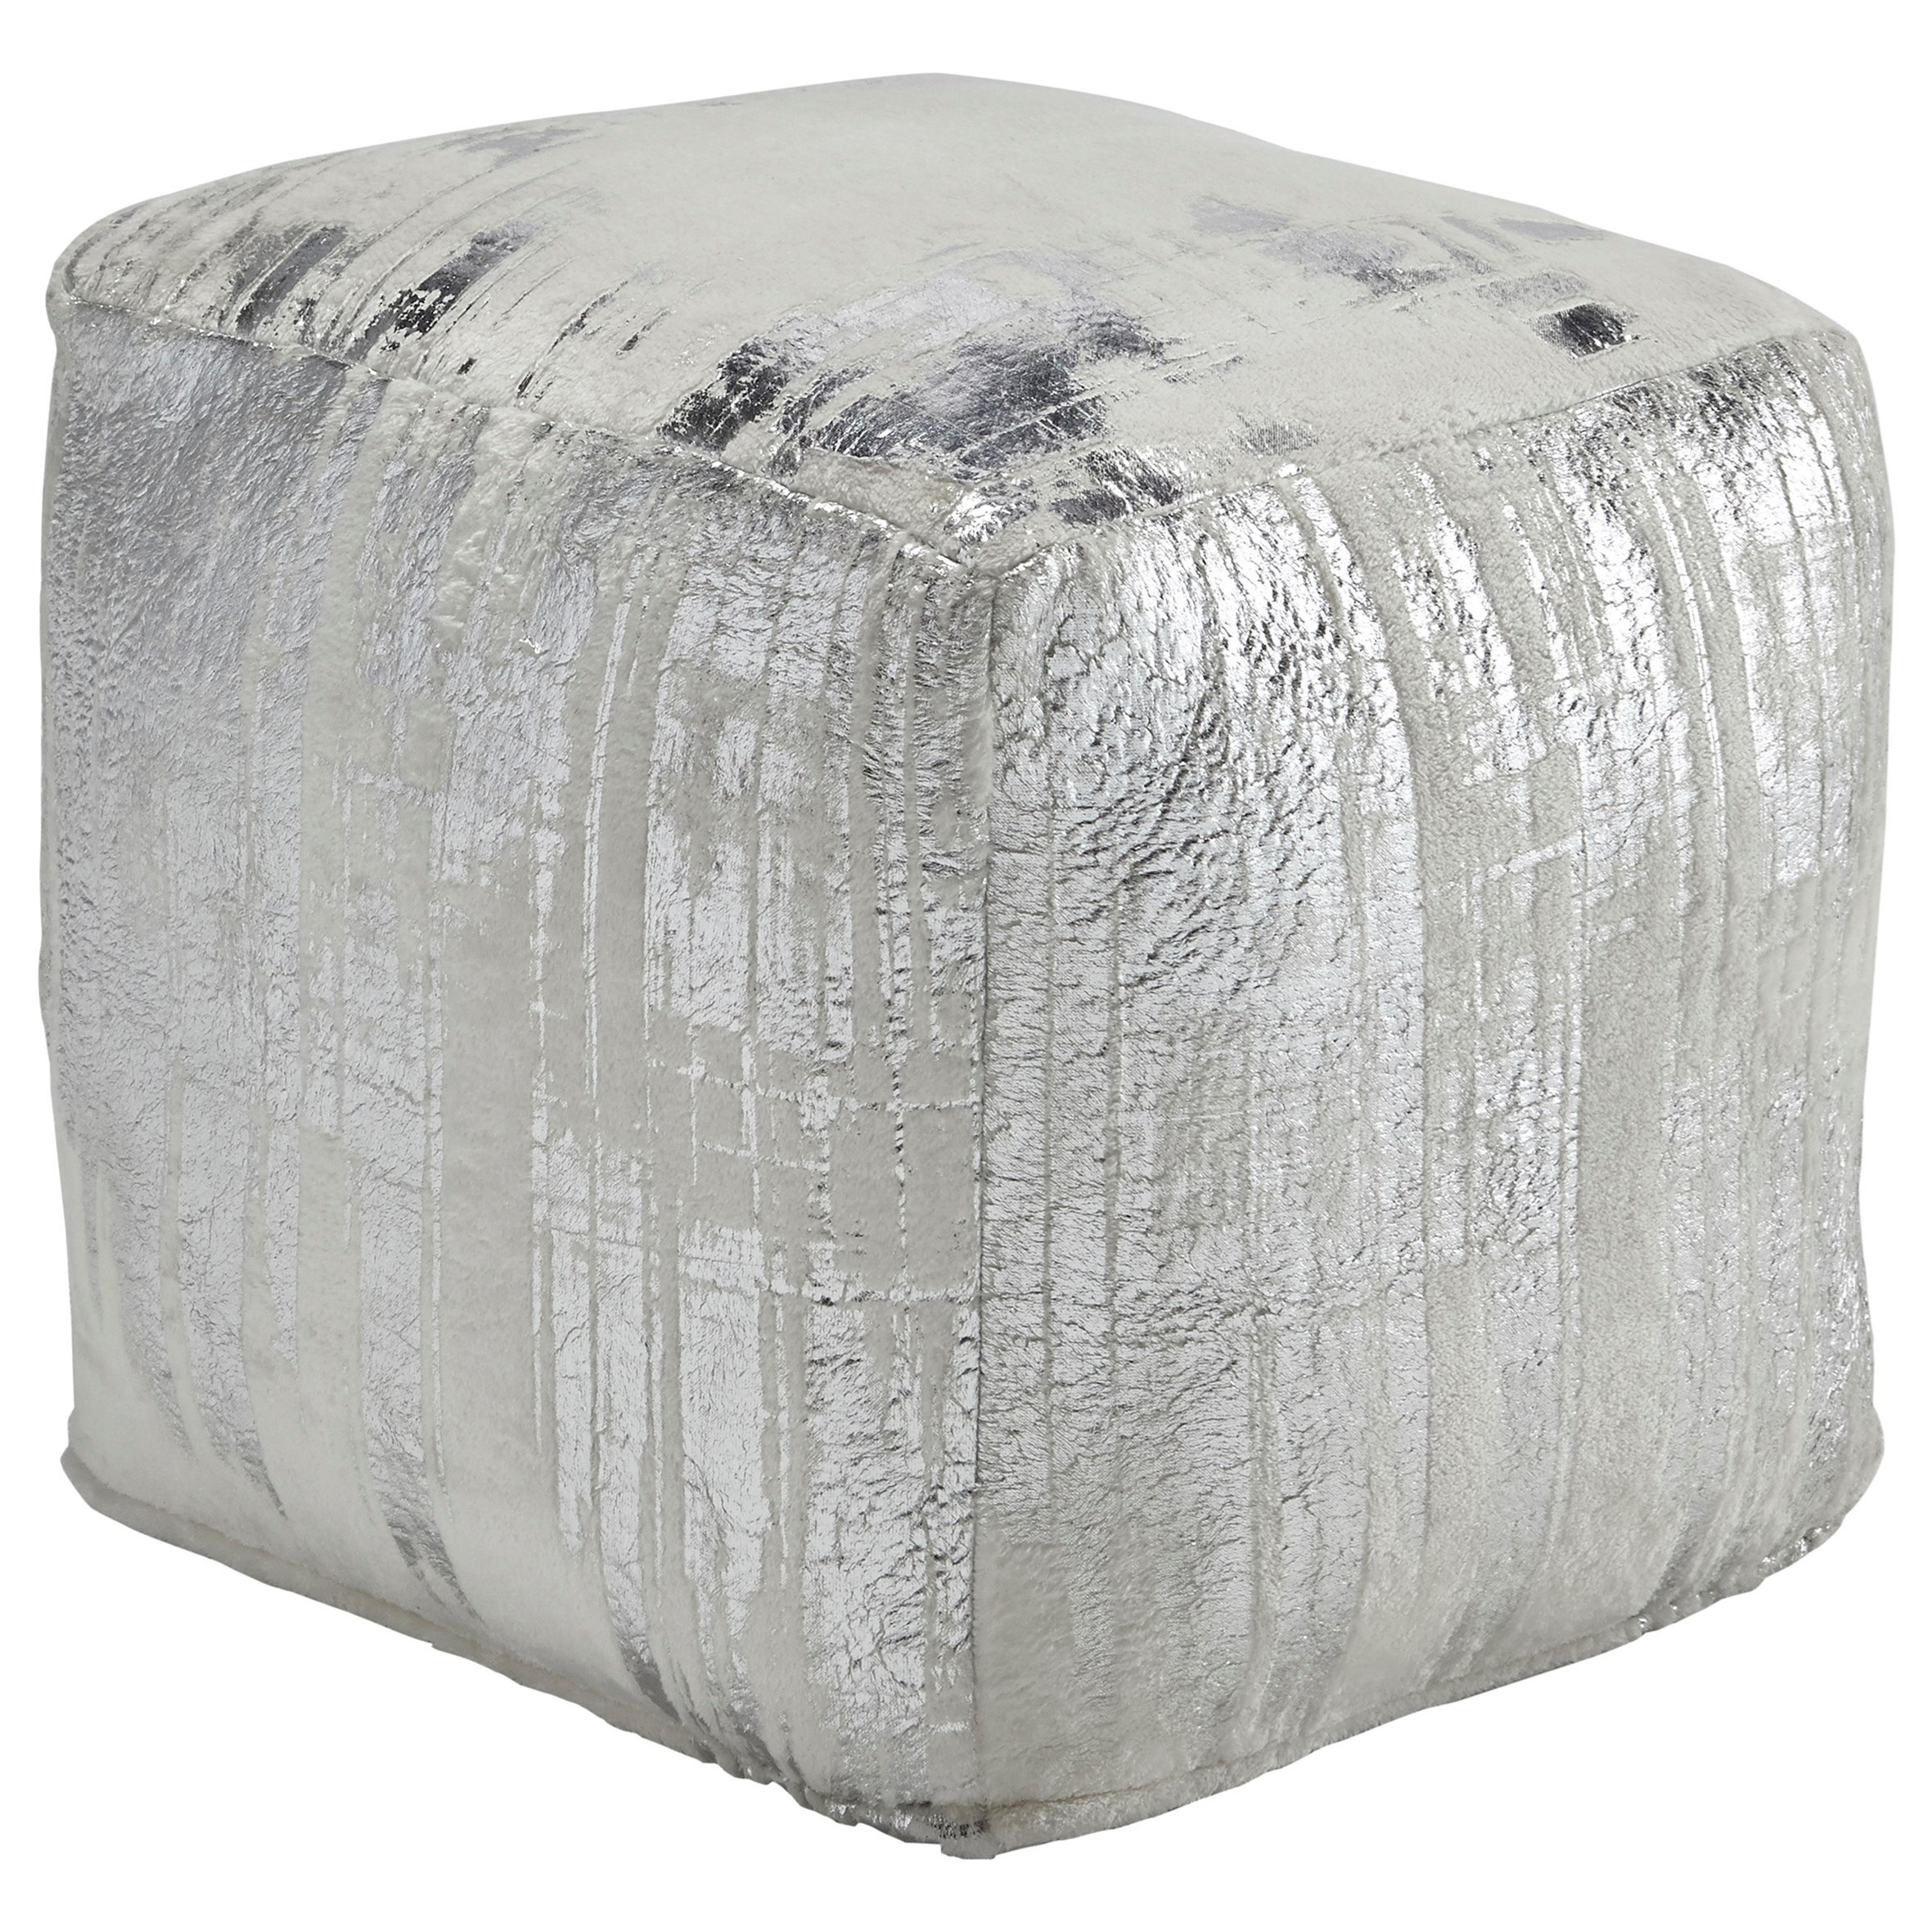 Signature Design by Ashley Poufs Alessandra Ivory/Silver Pouf - Item Number: A1000398